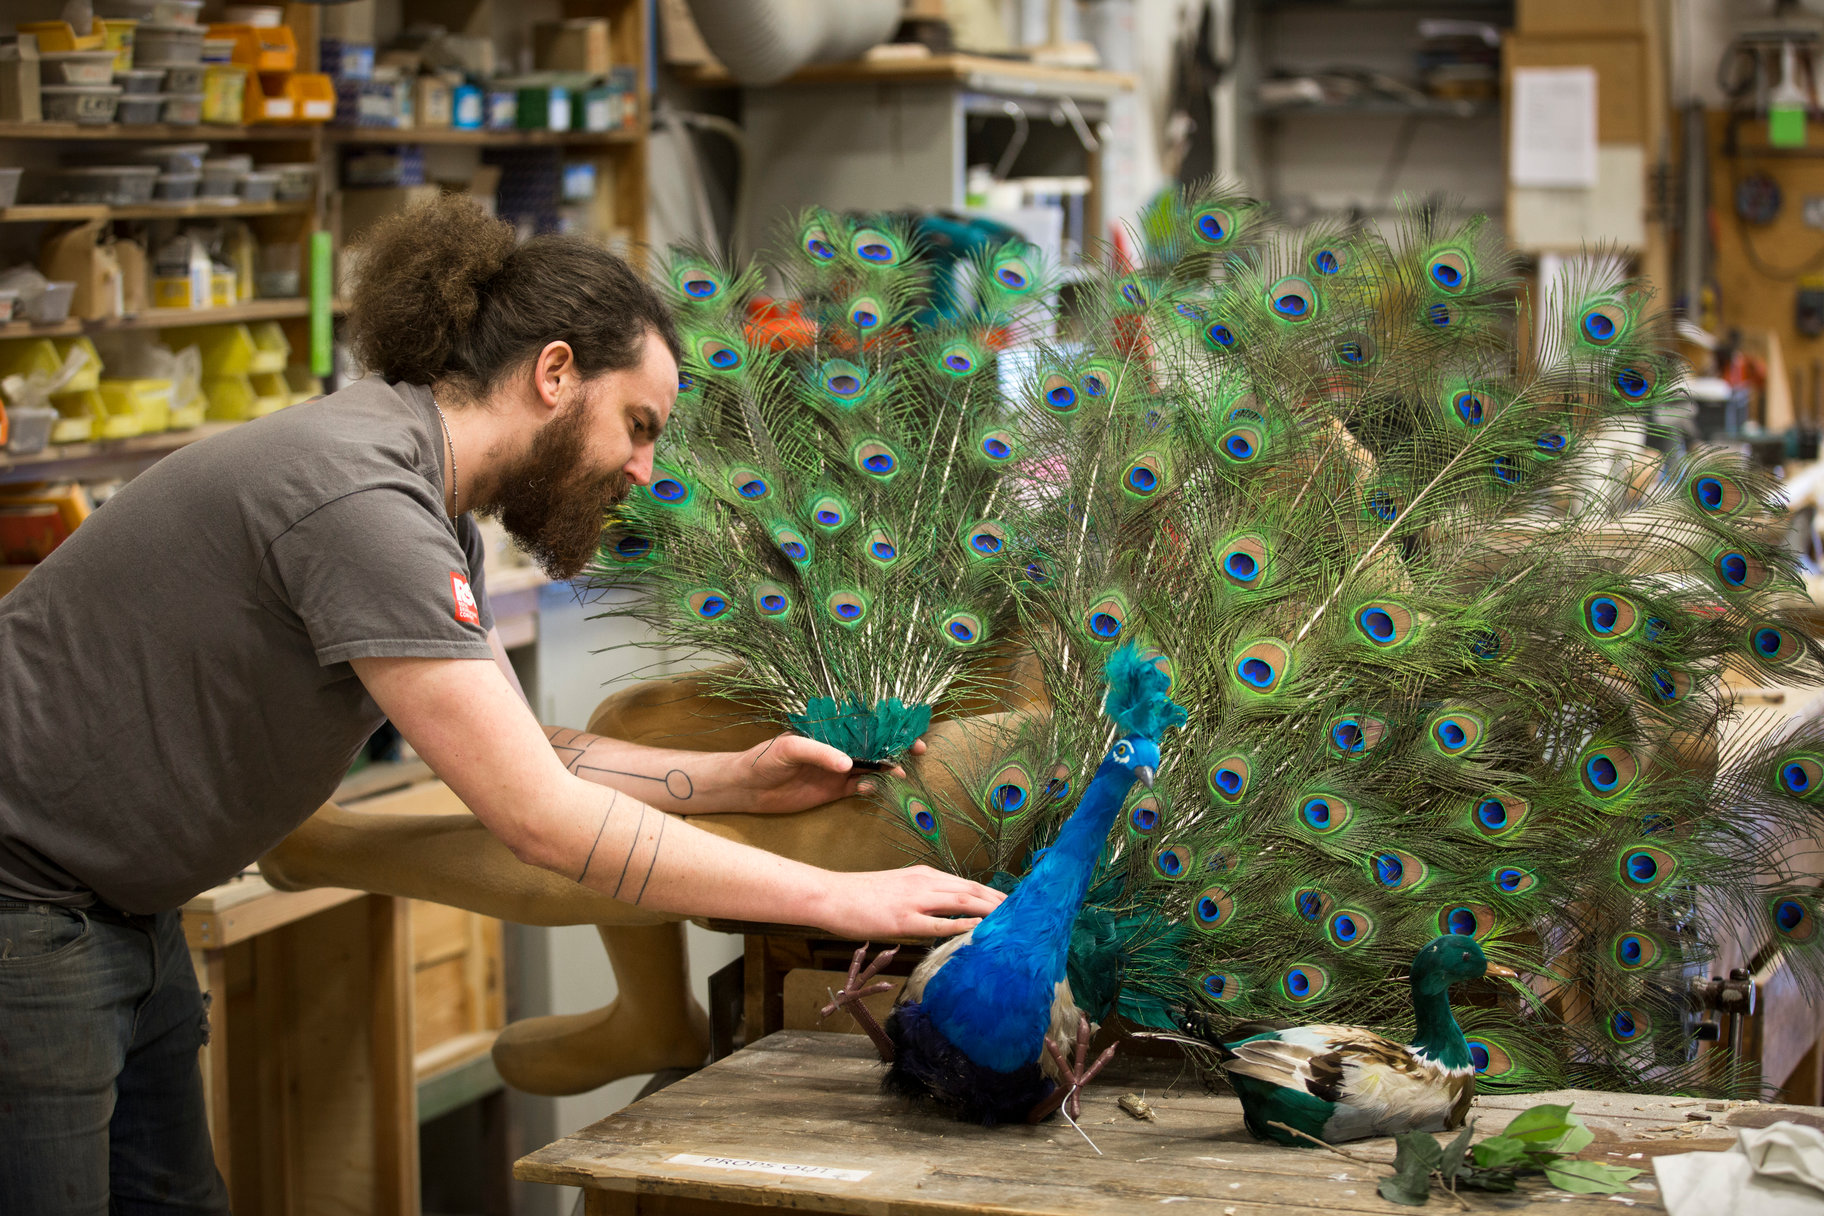 Bearded man working on a model of a peacock with fanned out tail